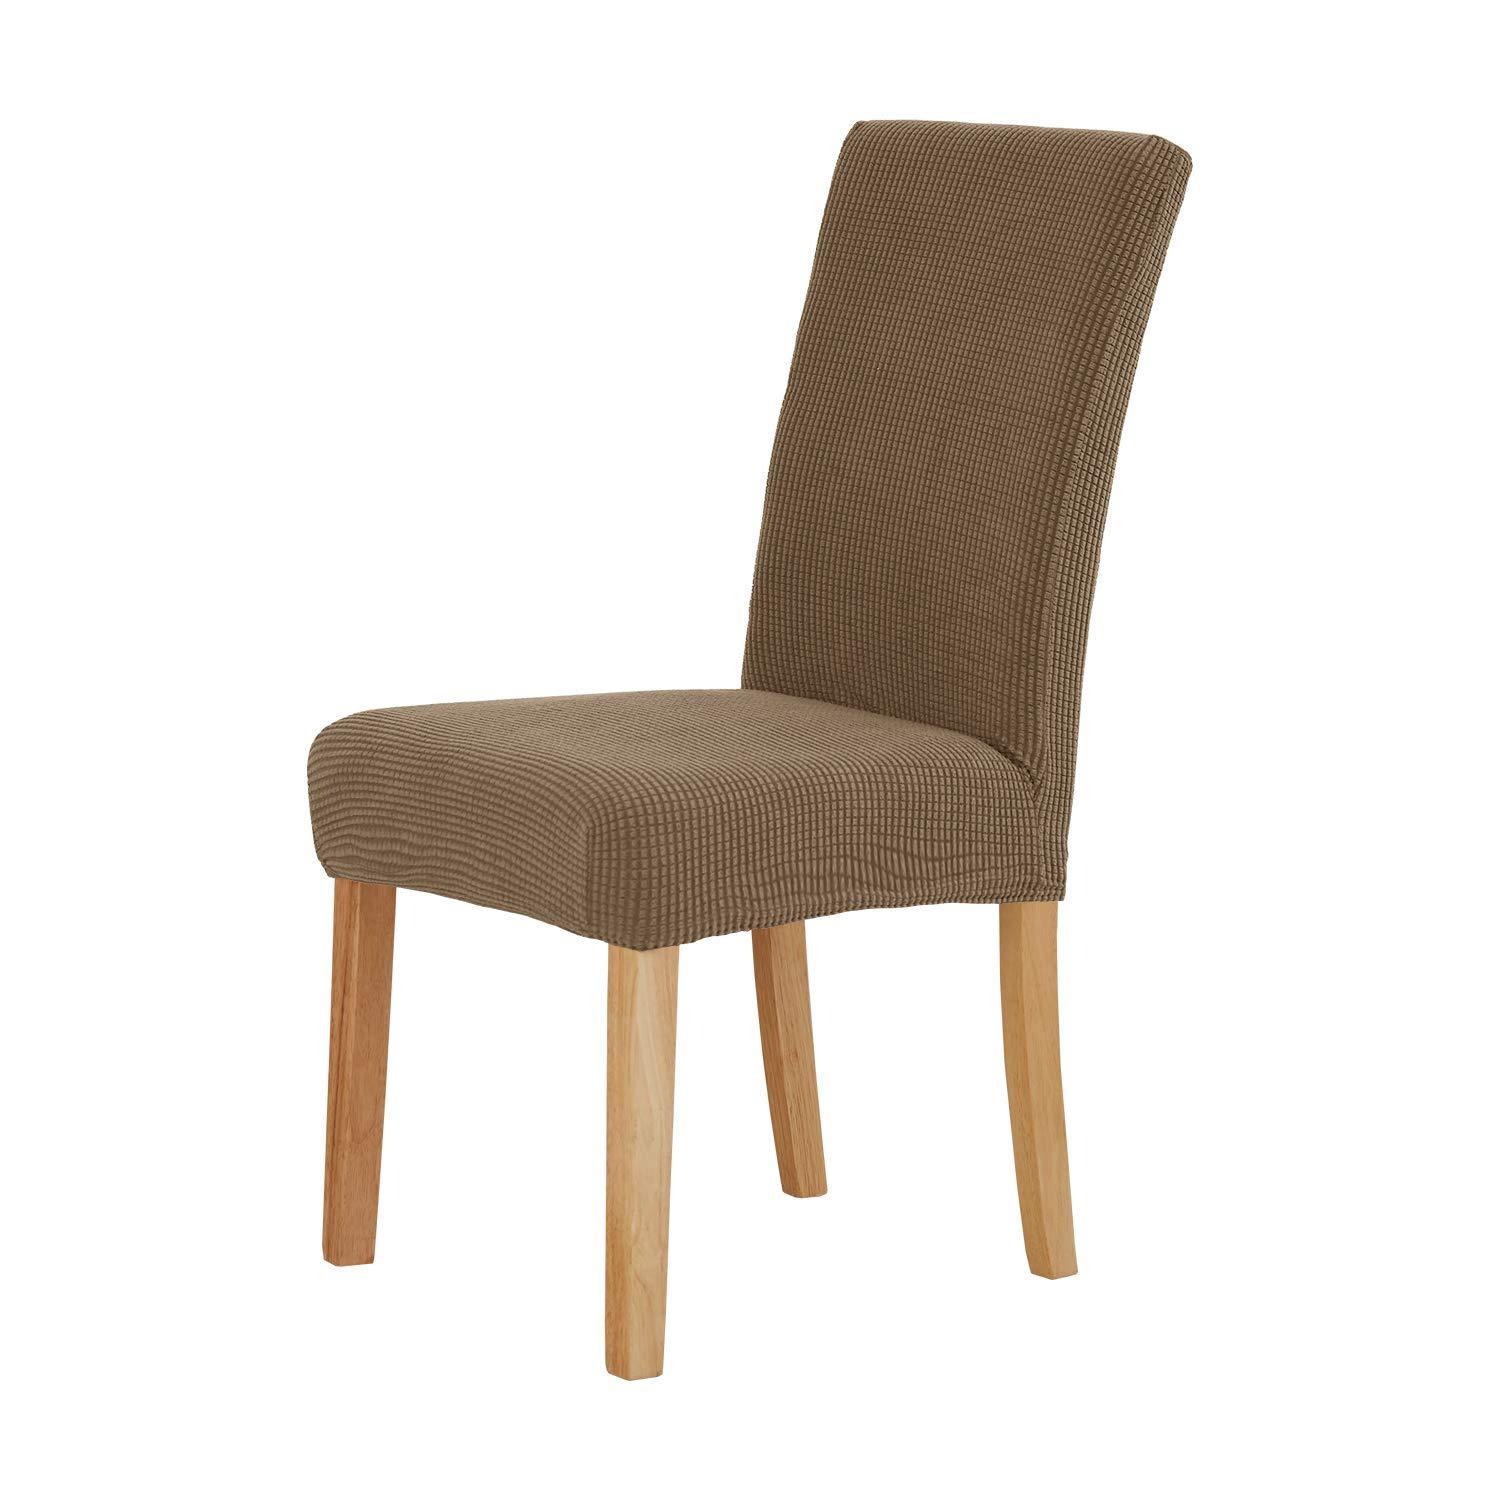 Dining Chair Oversized Slip Cover Chair Pads Amp Cushions